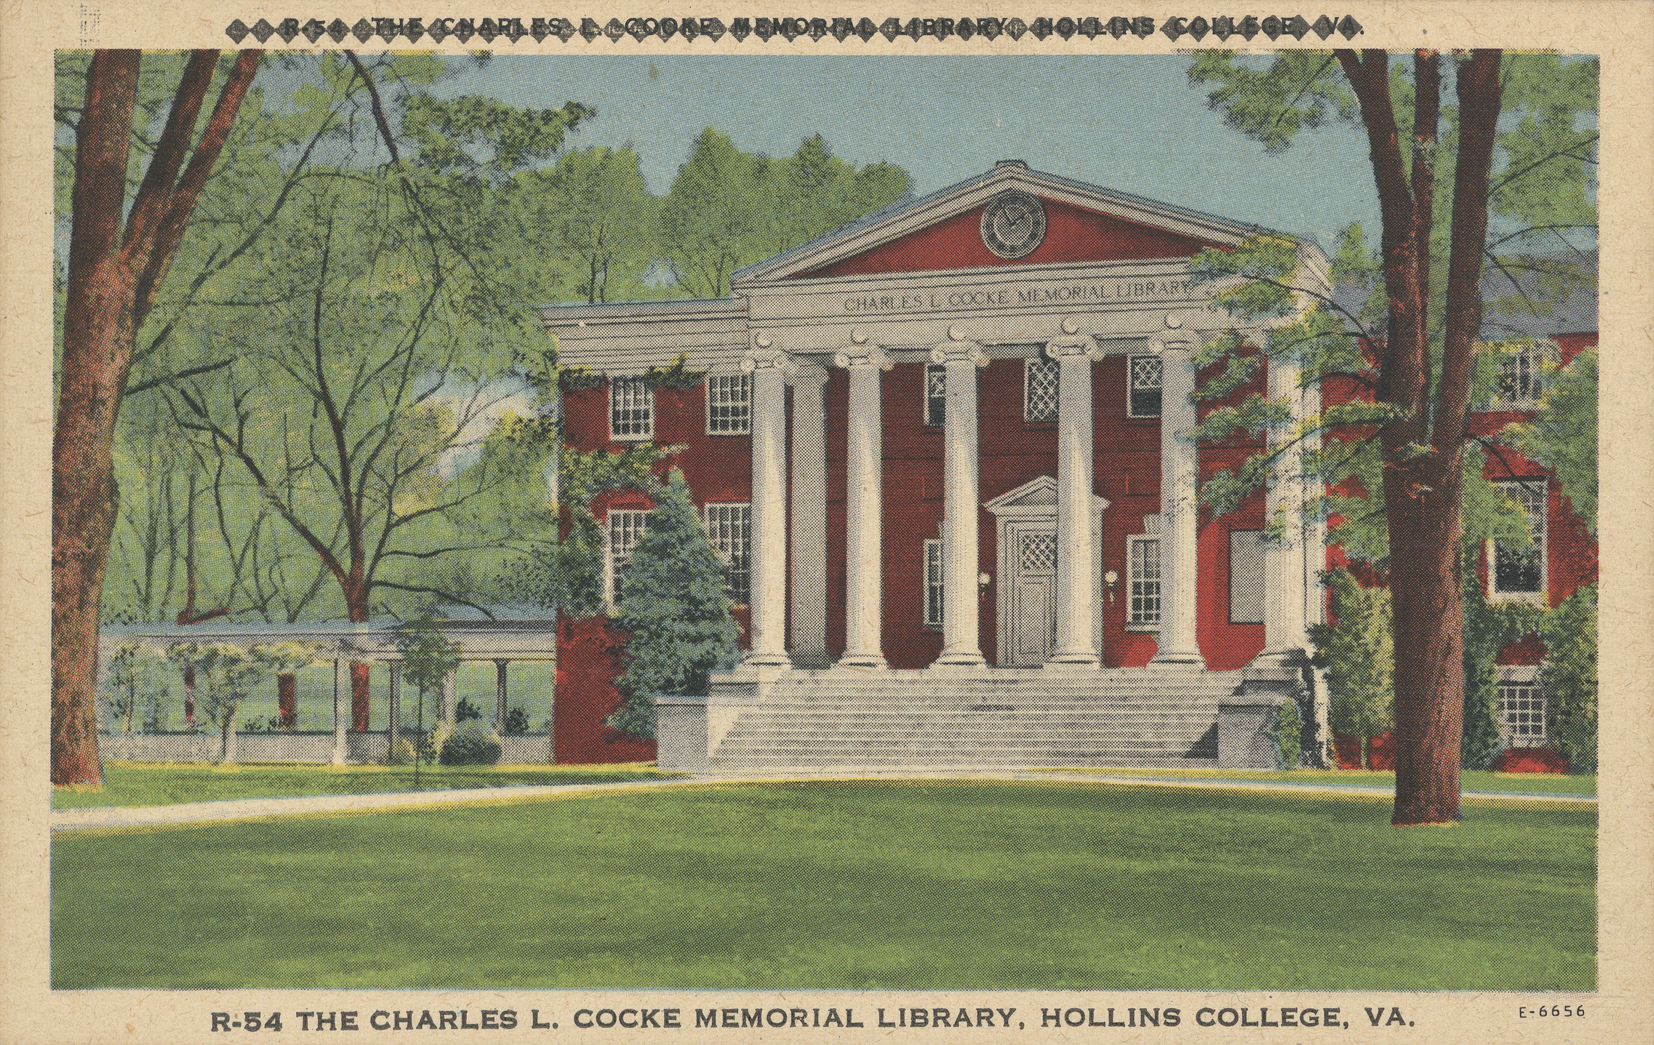 PC 114.22 Charles Cocke Memorial Library.jpg